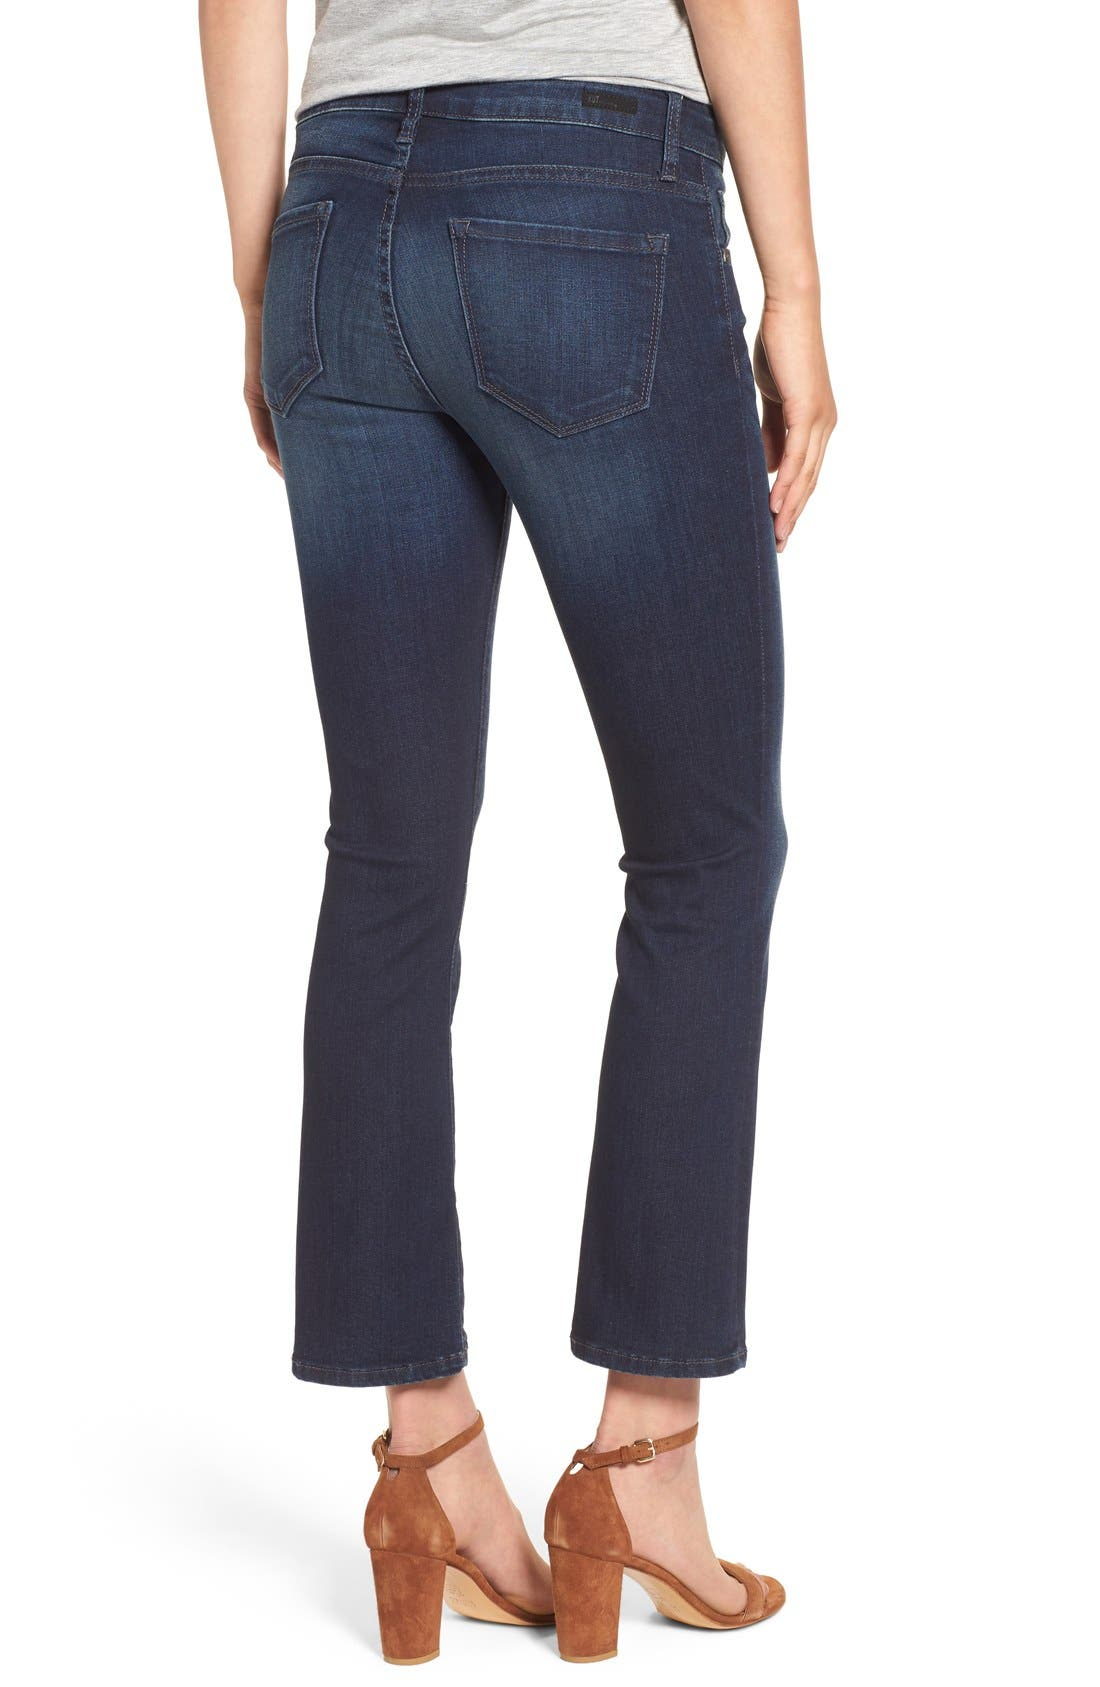 Alternate Image 2  - KUT from the Kloth 'Reese' Crop Flare Leg Jeans (Security)